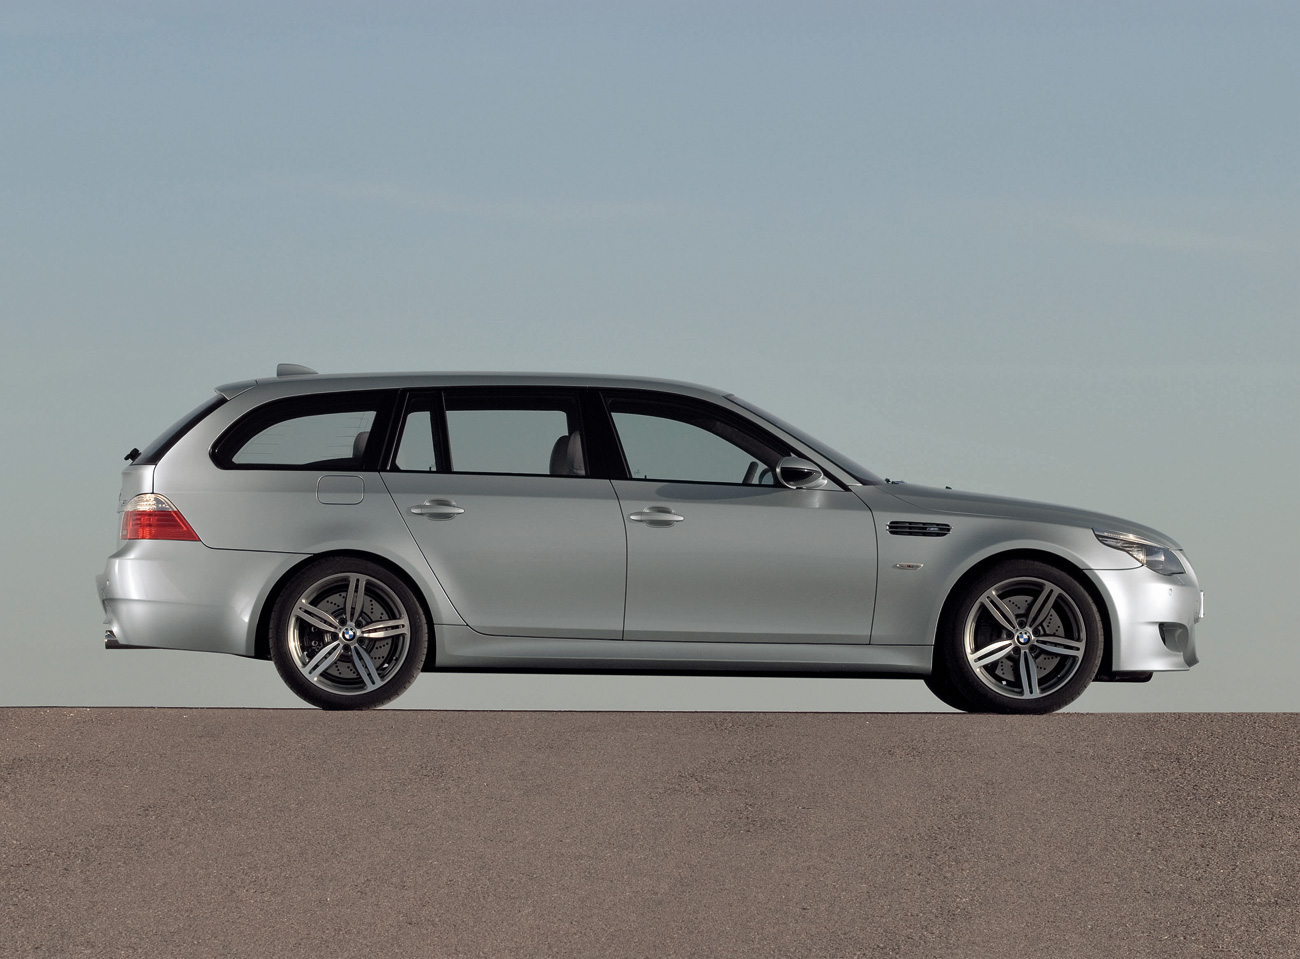 2008 BMW M5 Touring | Station Wagon Forums